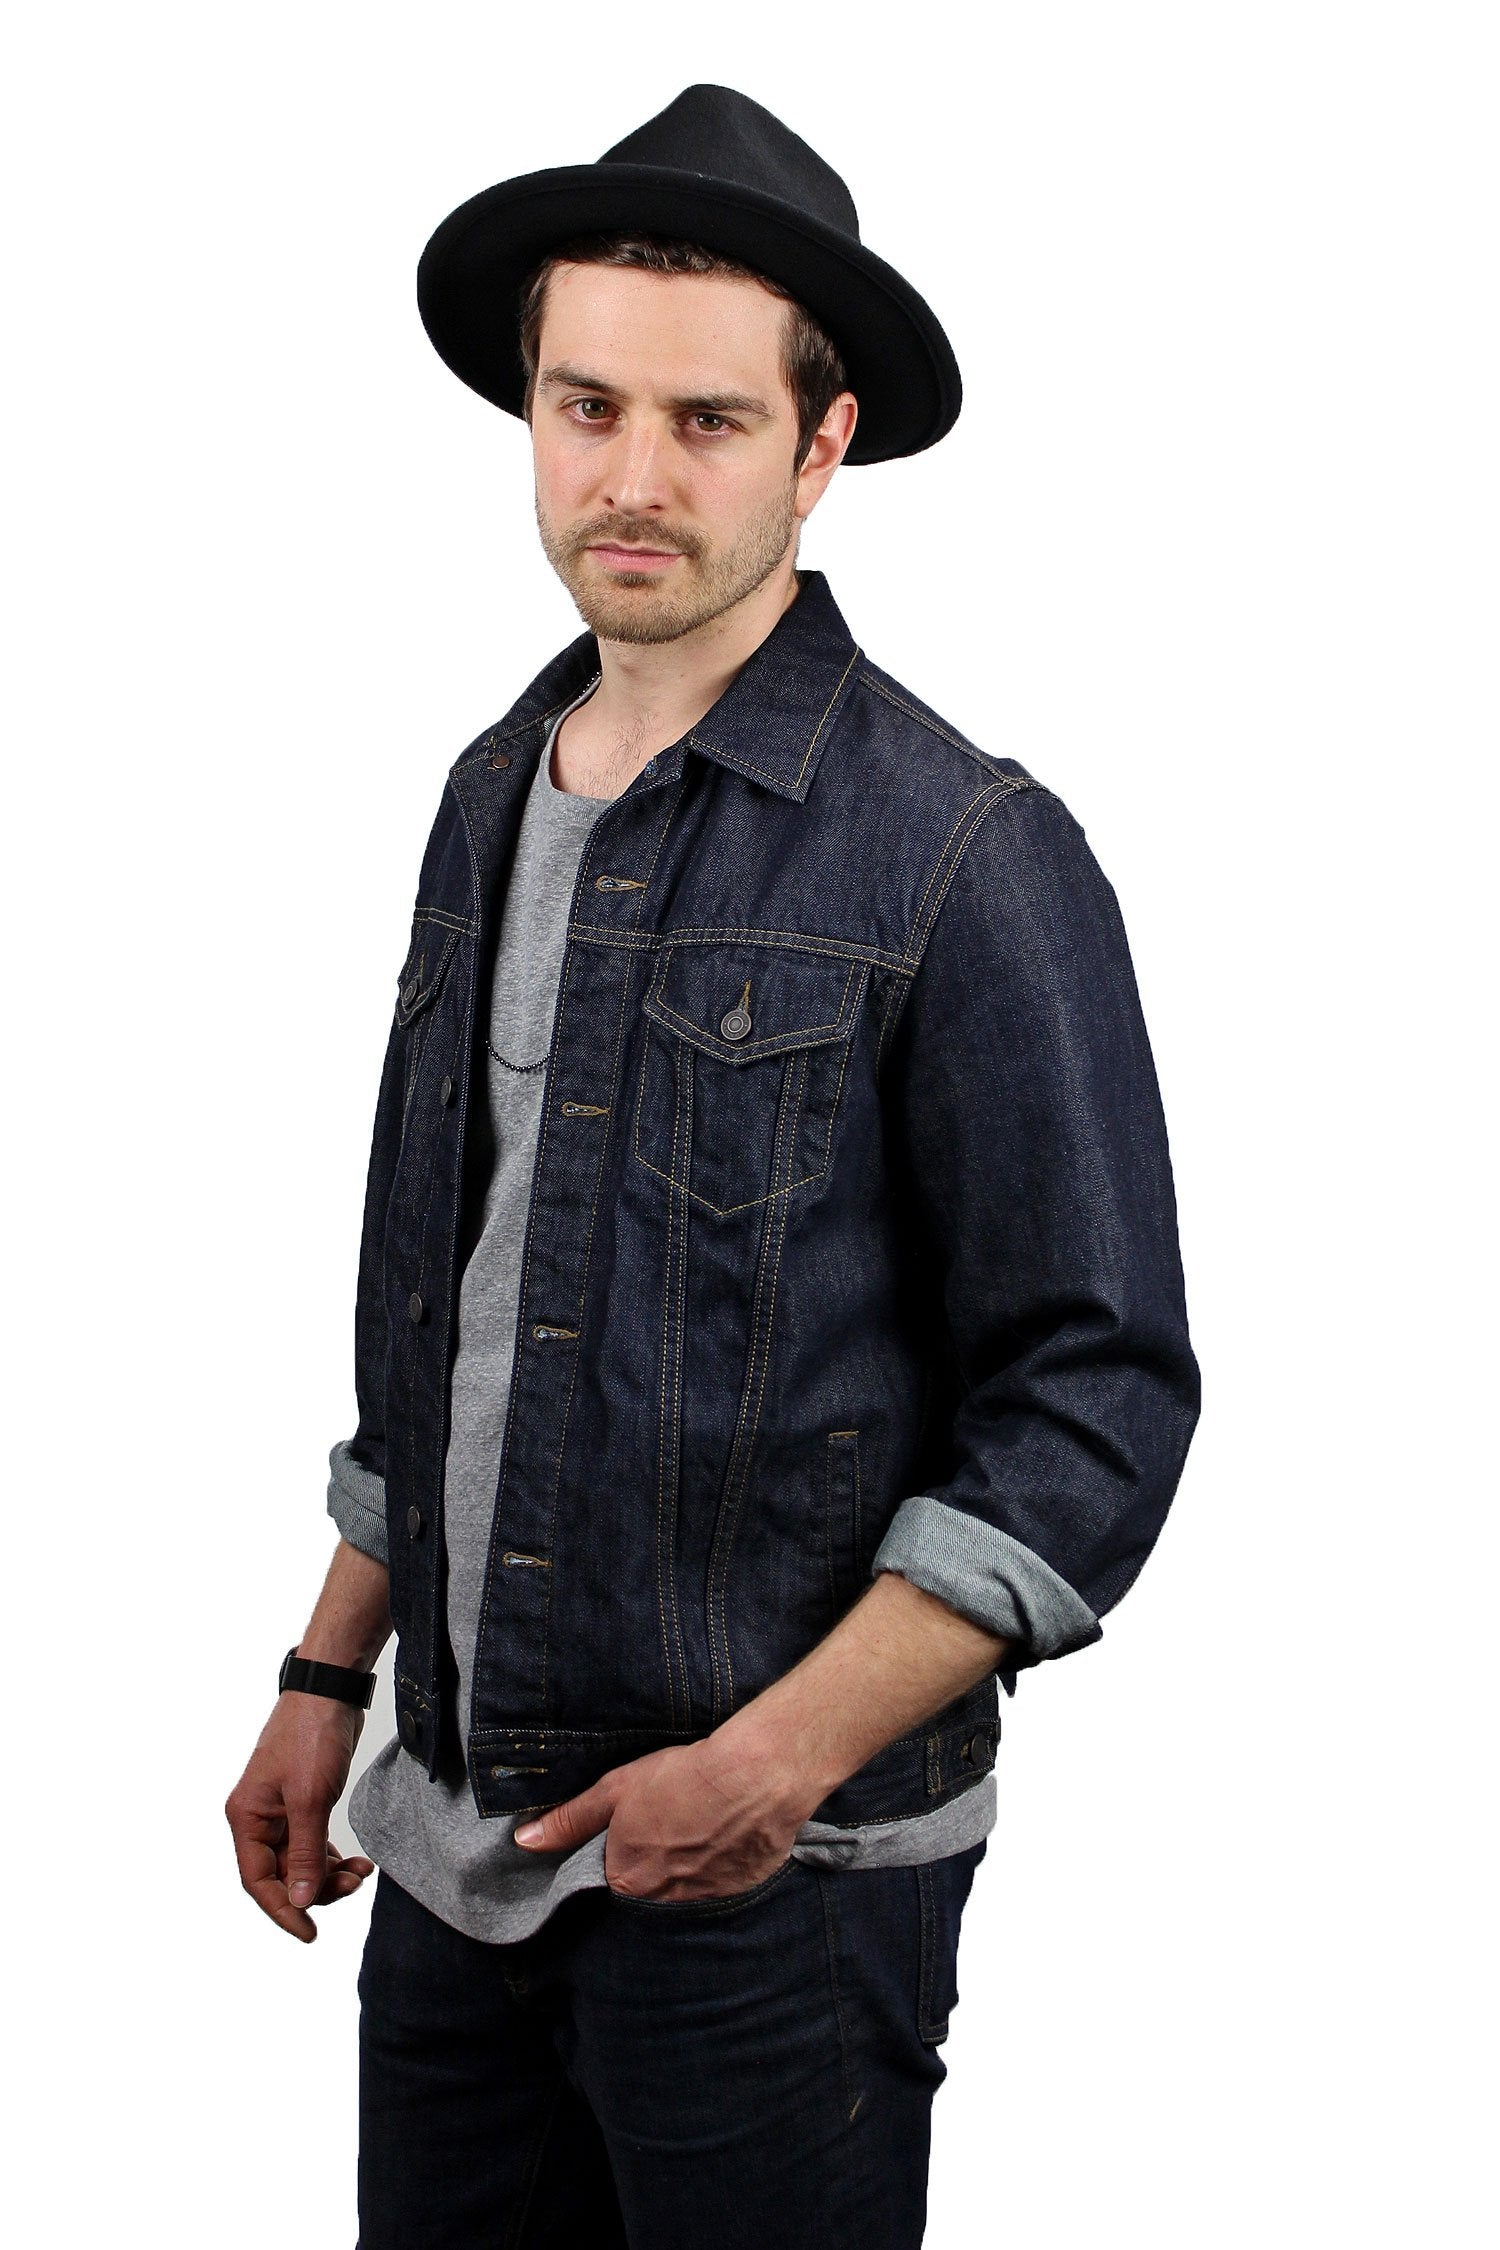 Wide Brim Fedora - The Arlo - Mens Fedora Black - King and Fifth Supply Co.